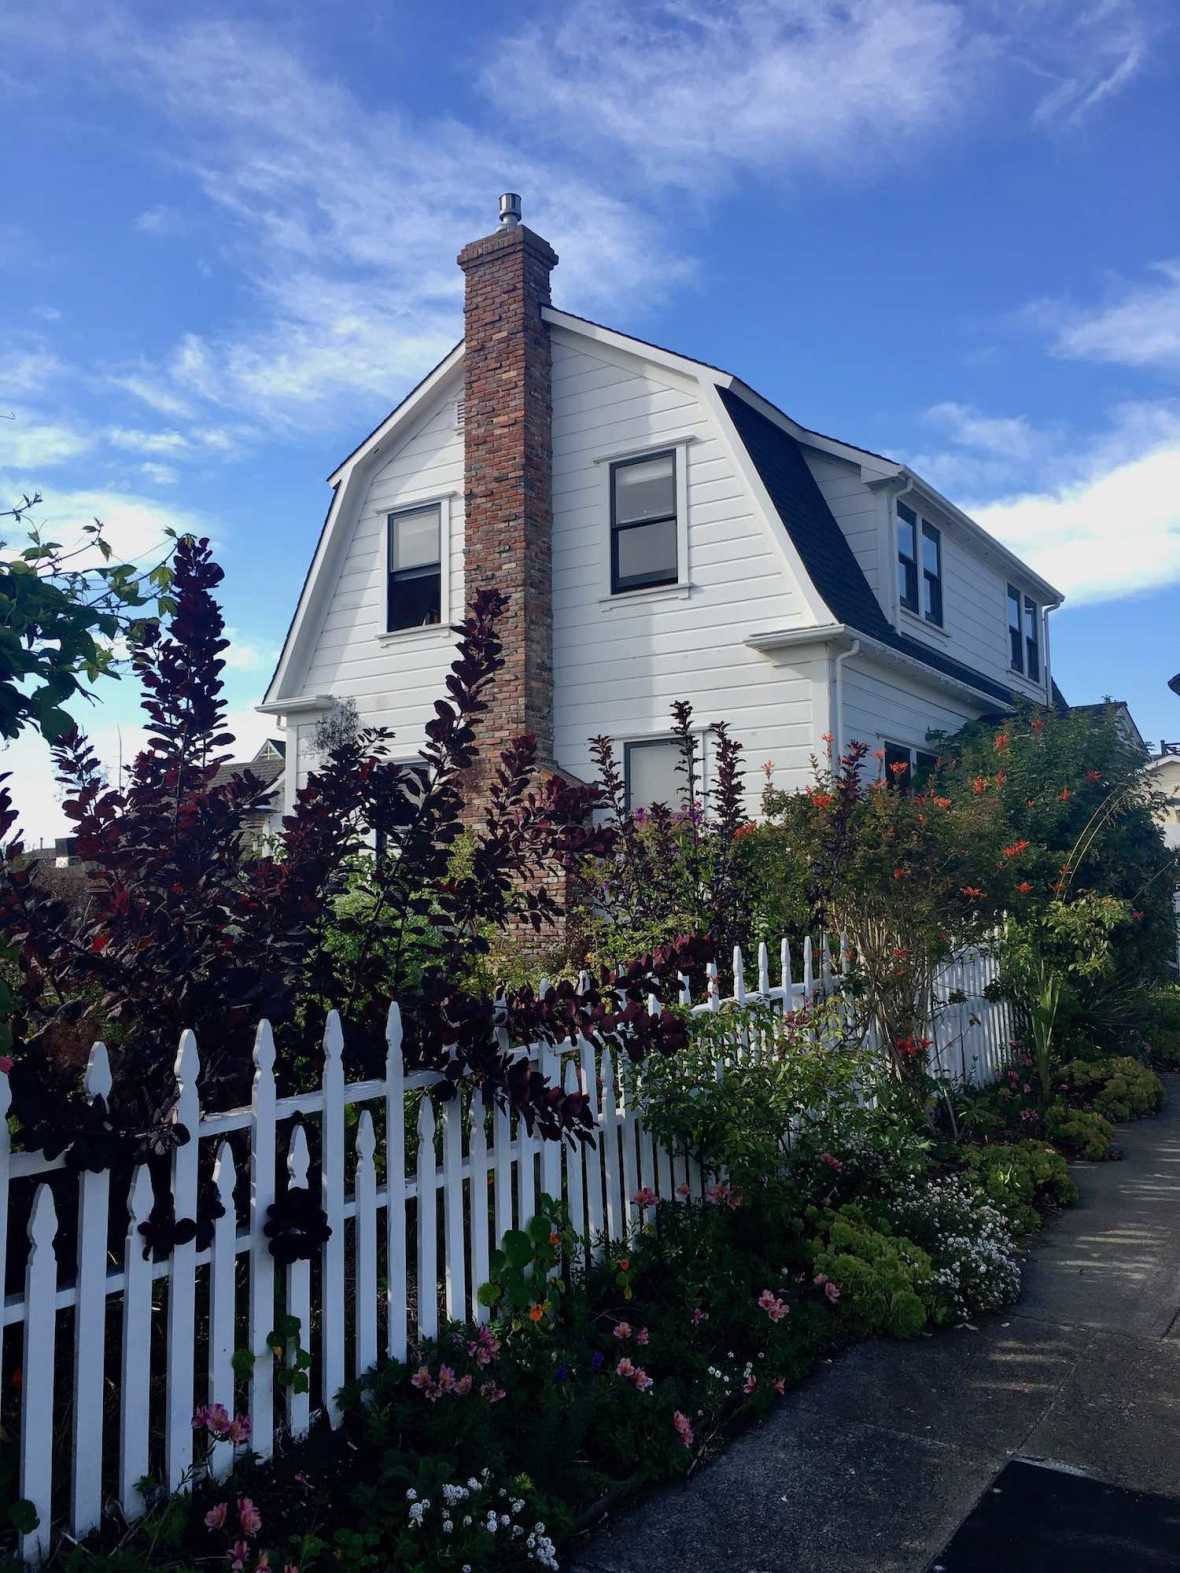 Gardens and New England village architecture in Mendocino, California